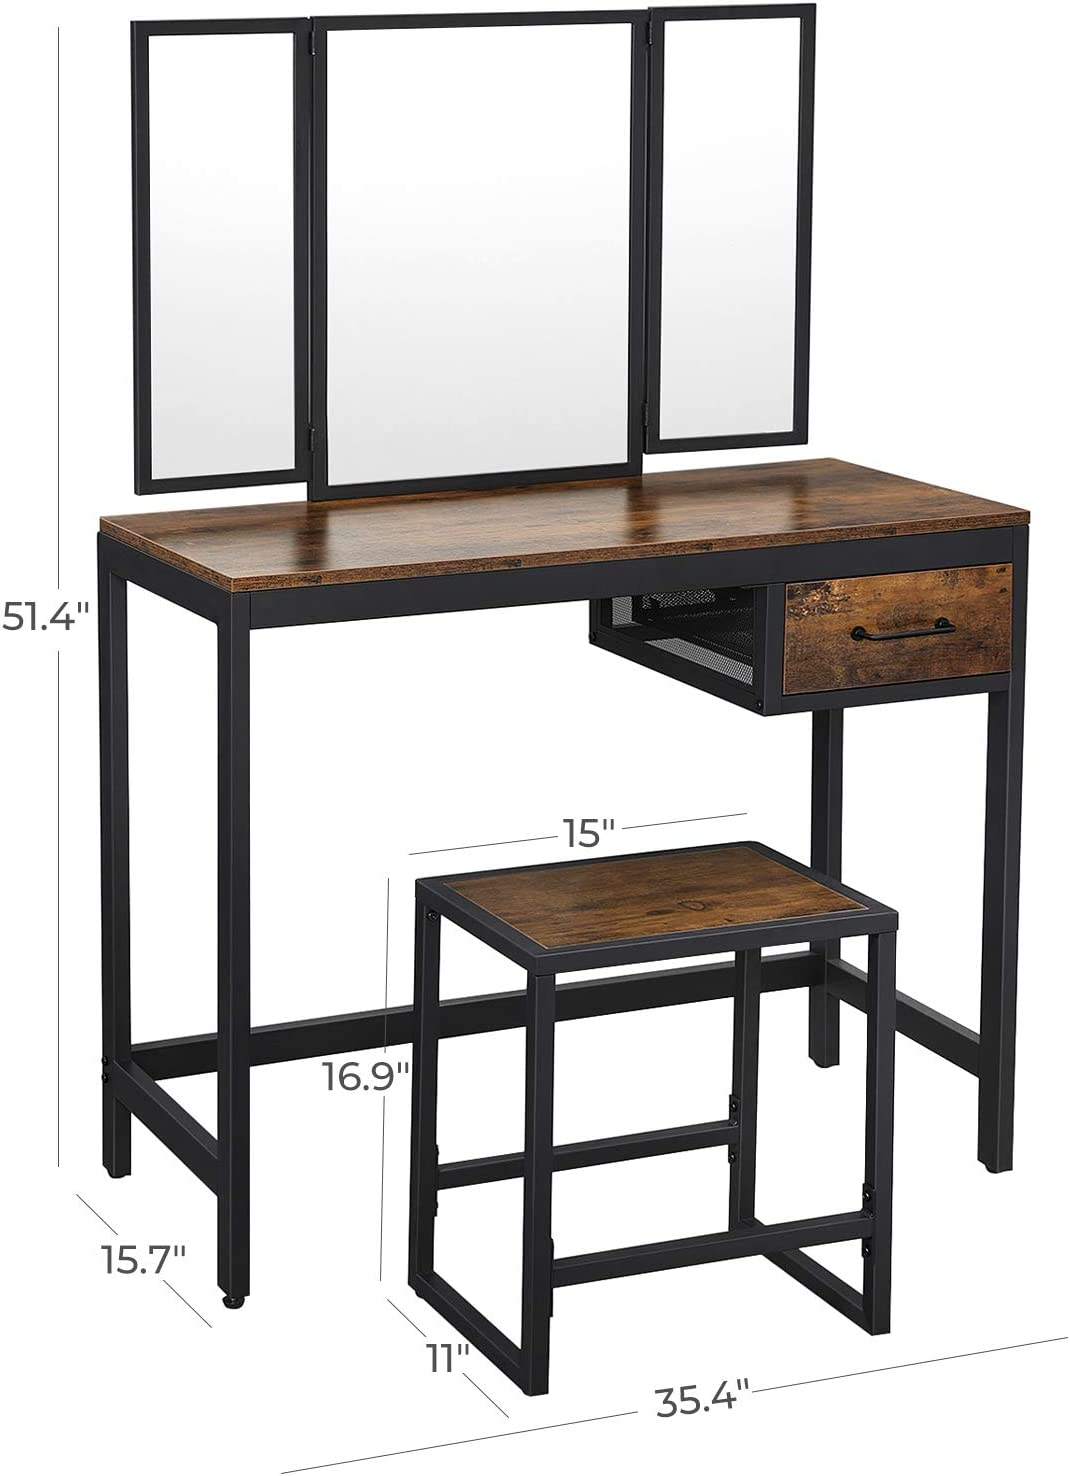 Industrial VASAGLE ALINRU Vanity Table Set Tri-Fold Mirror Rustic Brown and Black URVT01BX Makeup Table with Stool 1 Drawer